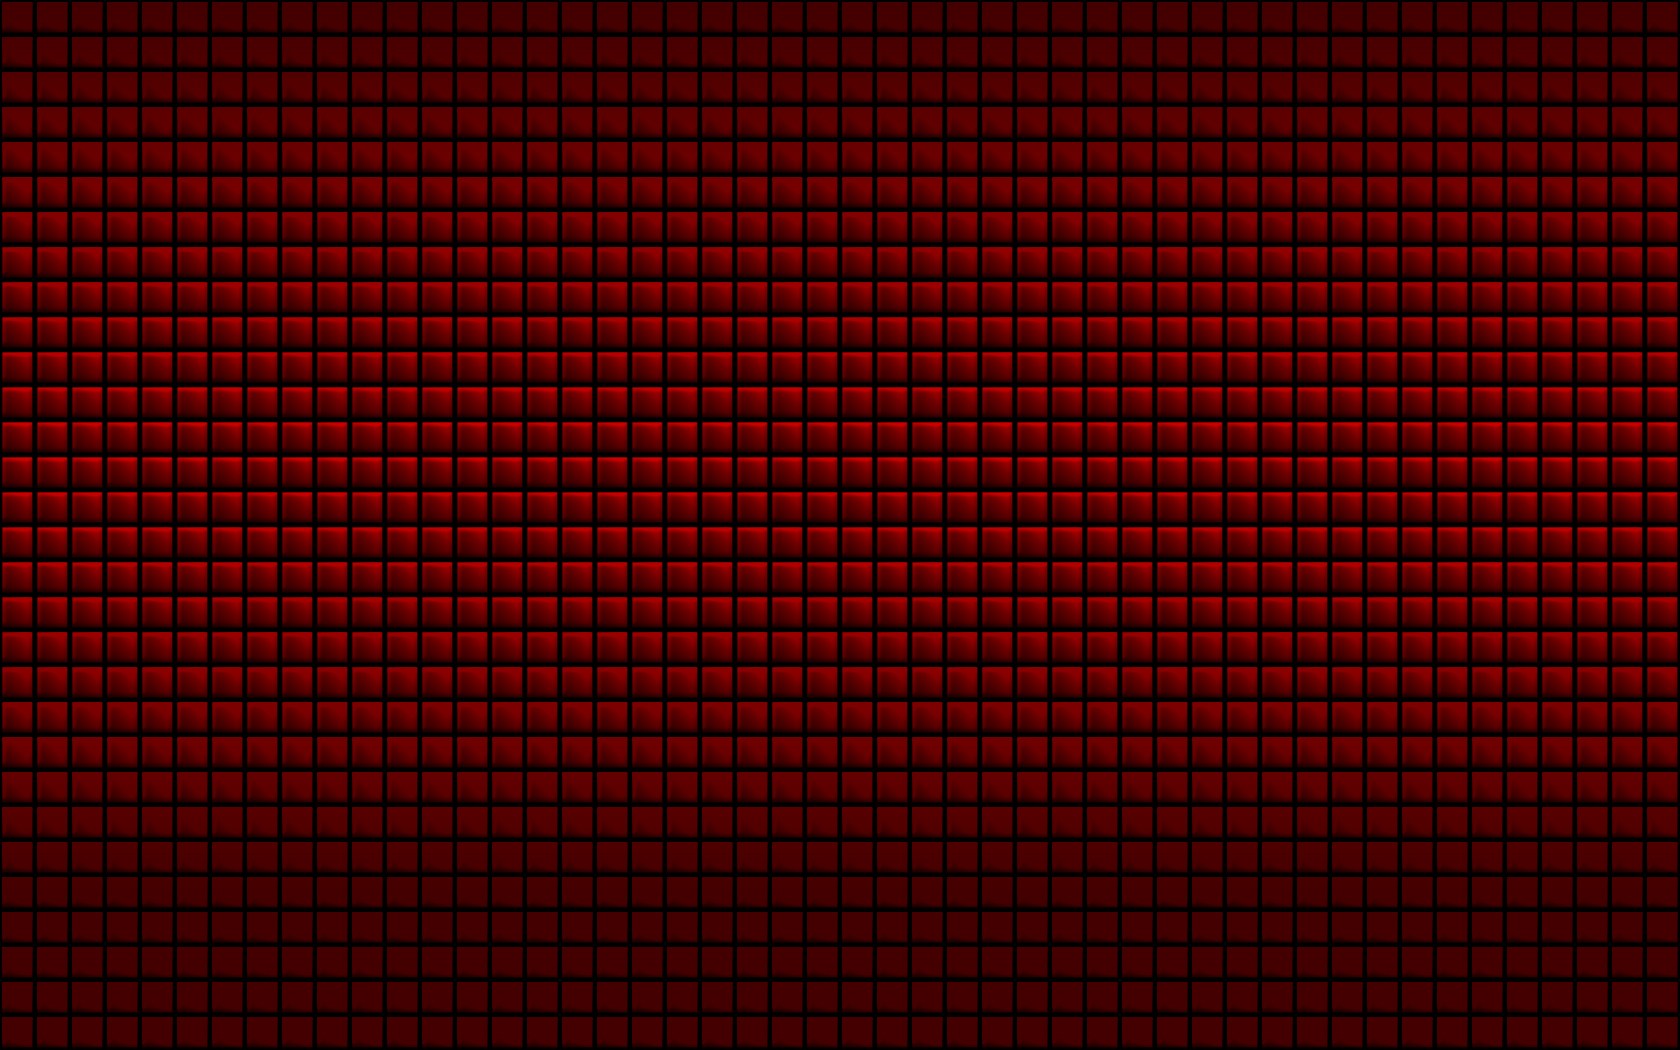 Square Wallpaper and Background Image   1680x1050   ID ...